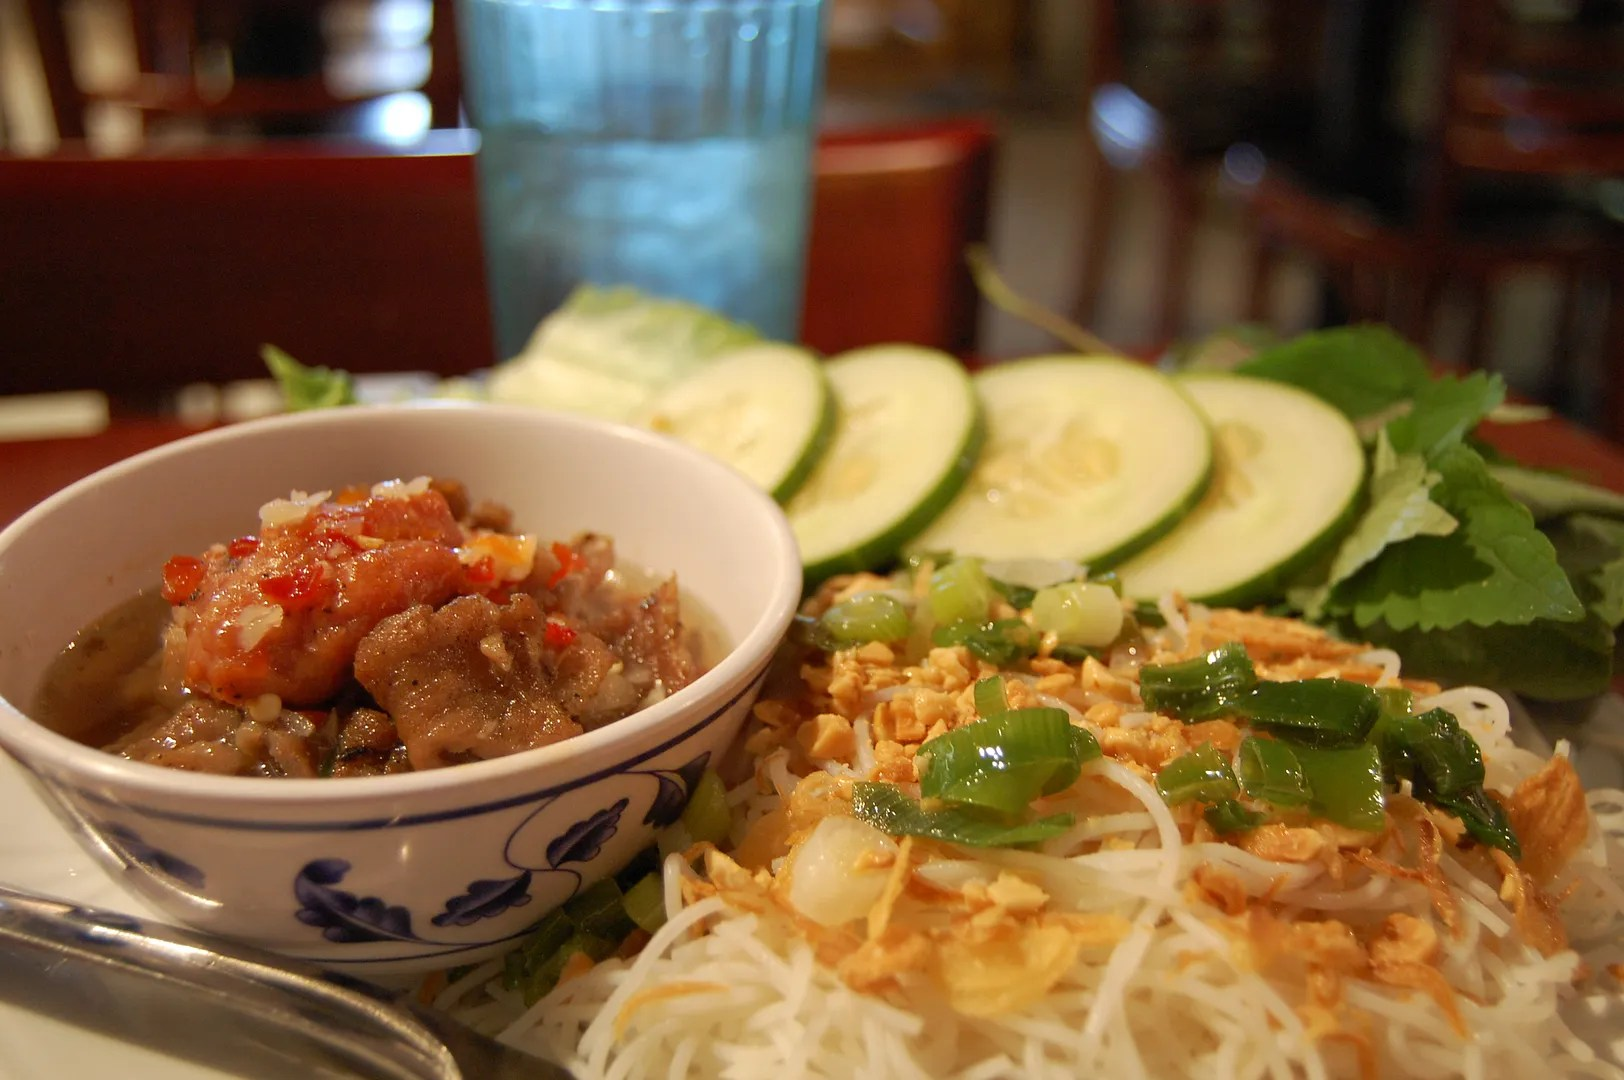 photo Buacuten_ch_Vietnamese_food_zpsht147rxv.jpg